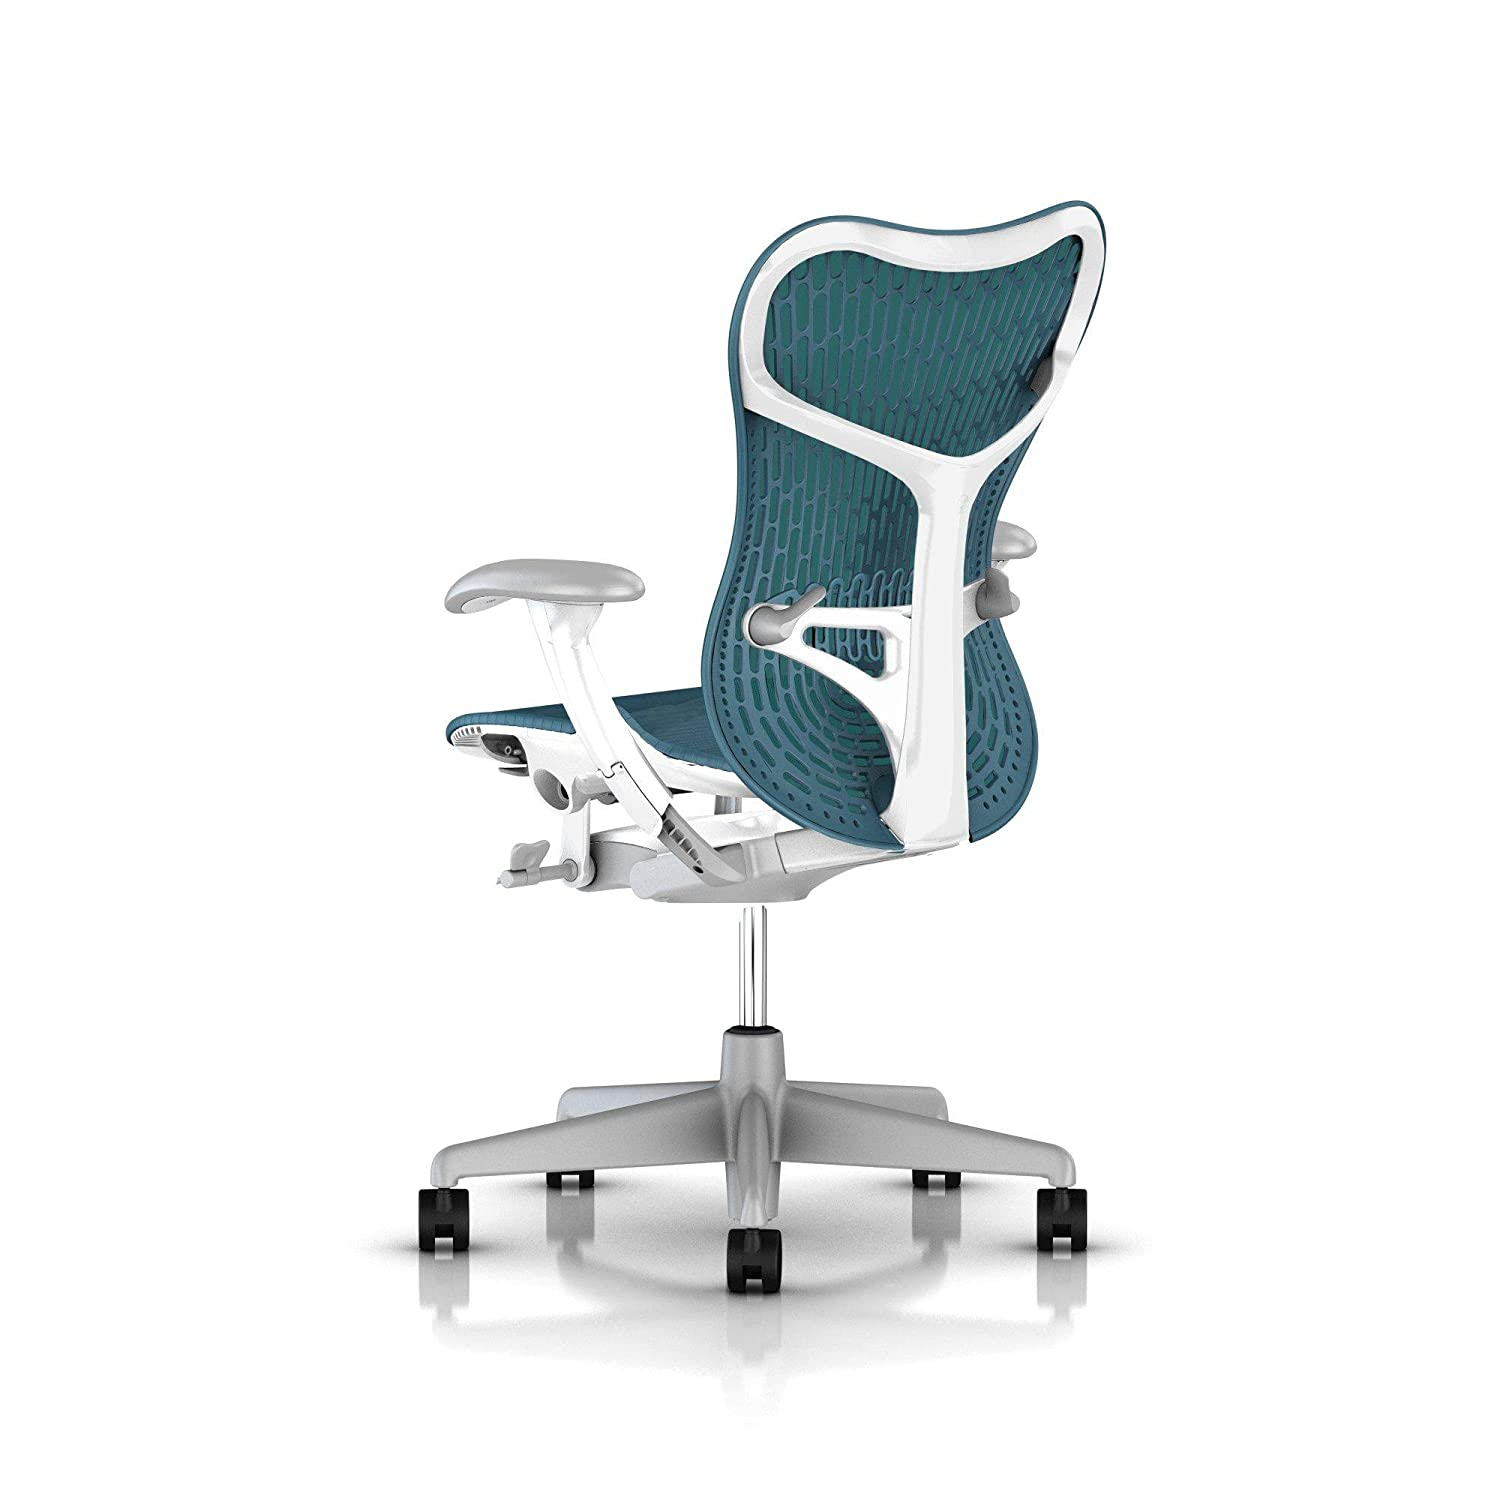 amazoncom herman miller mirra  office chair tilt limiter  - amazoncom herman miller mirra  office chair tilt limiter  adjustablearms and seat  dark turquoise butterfly suspension latitude back withstudio white